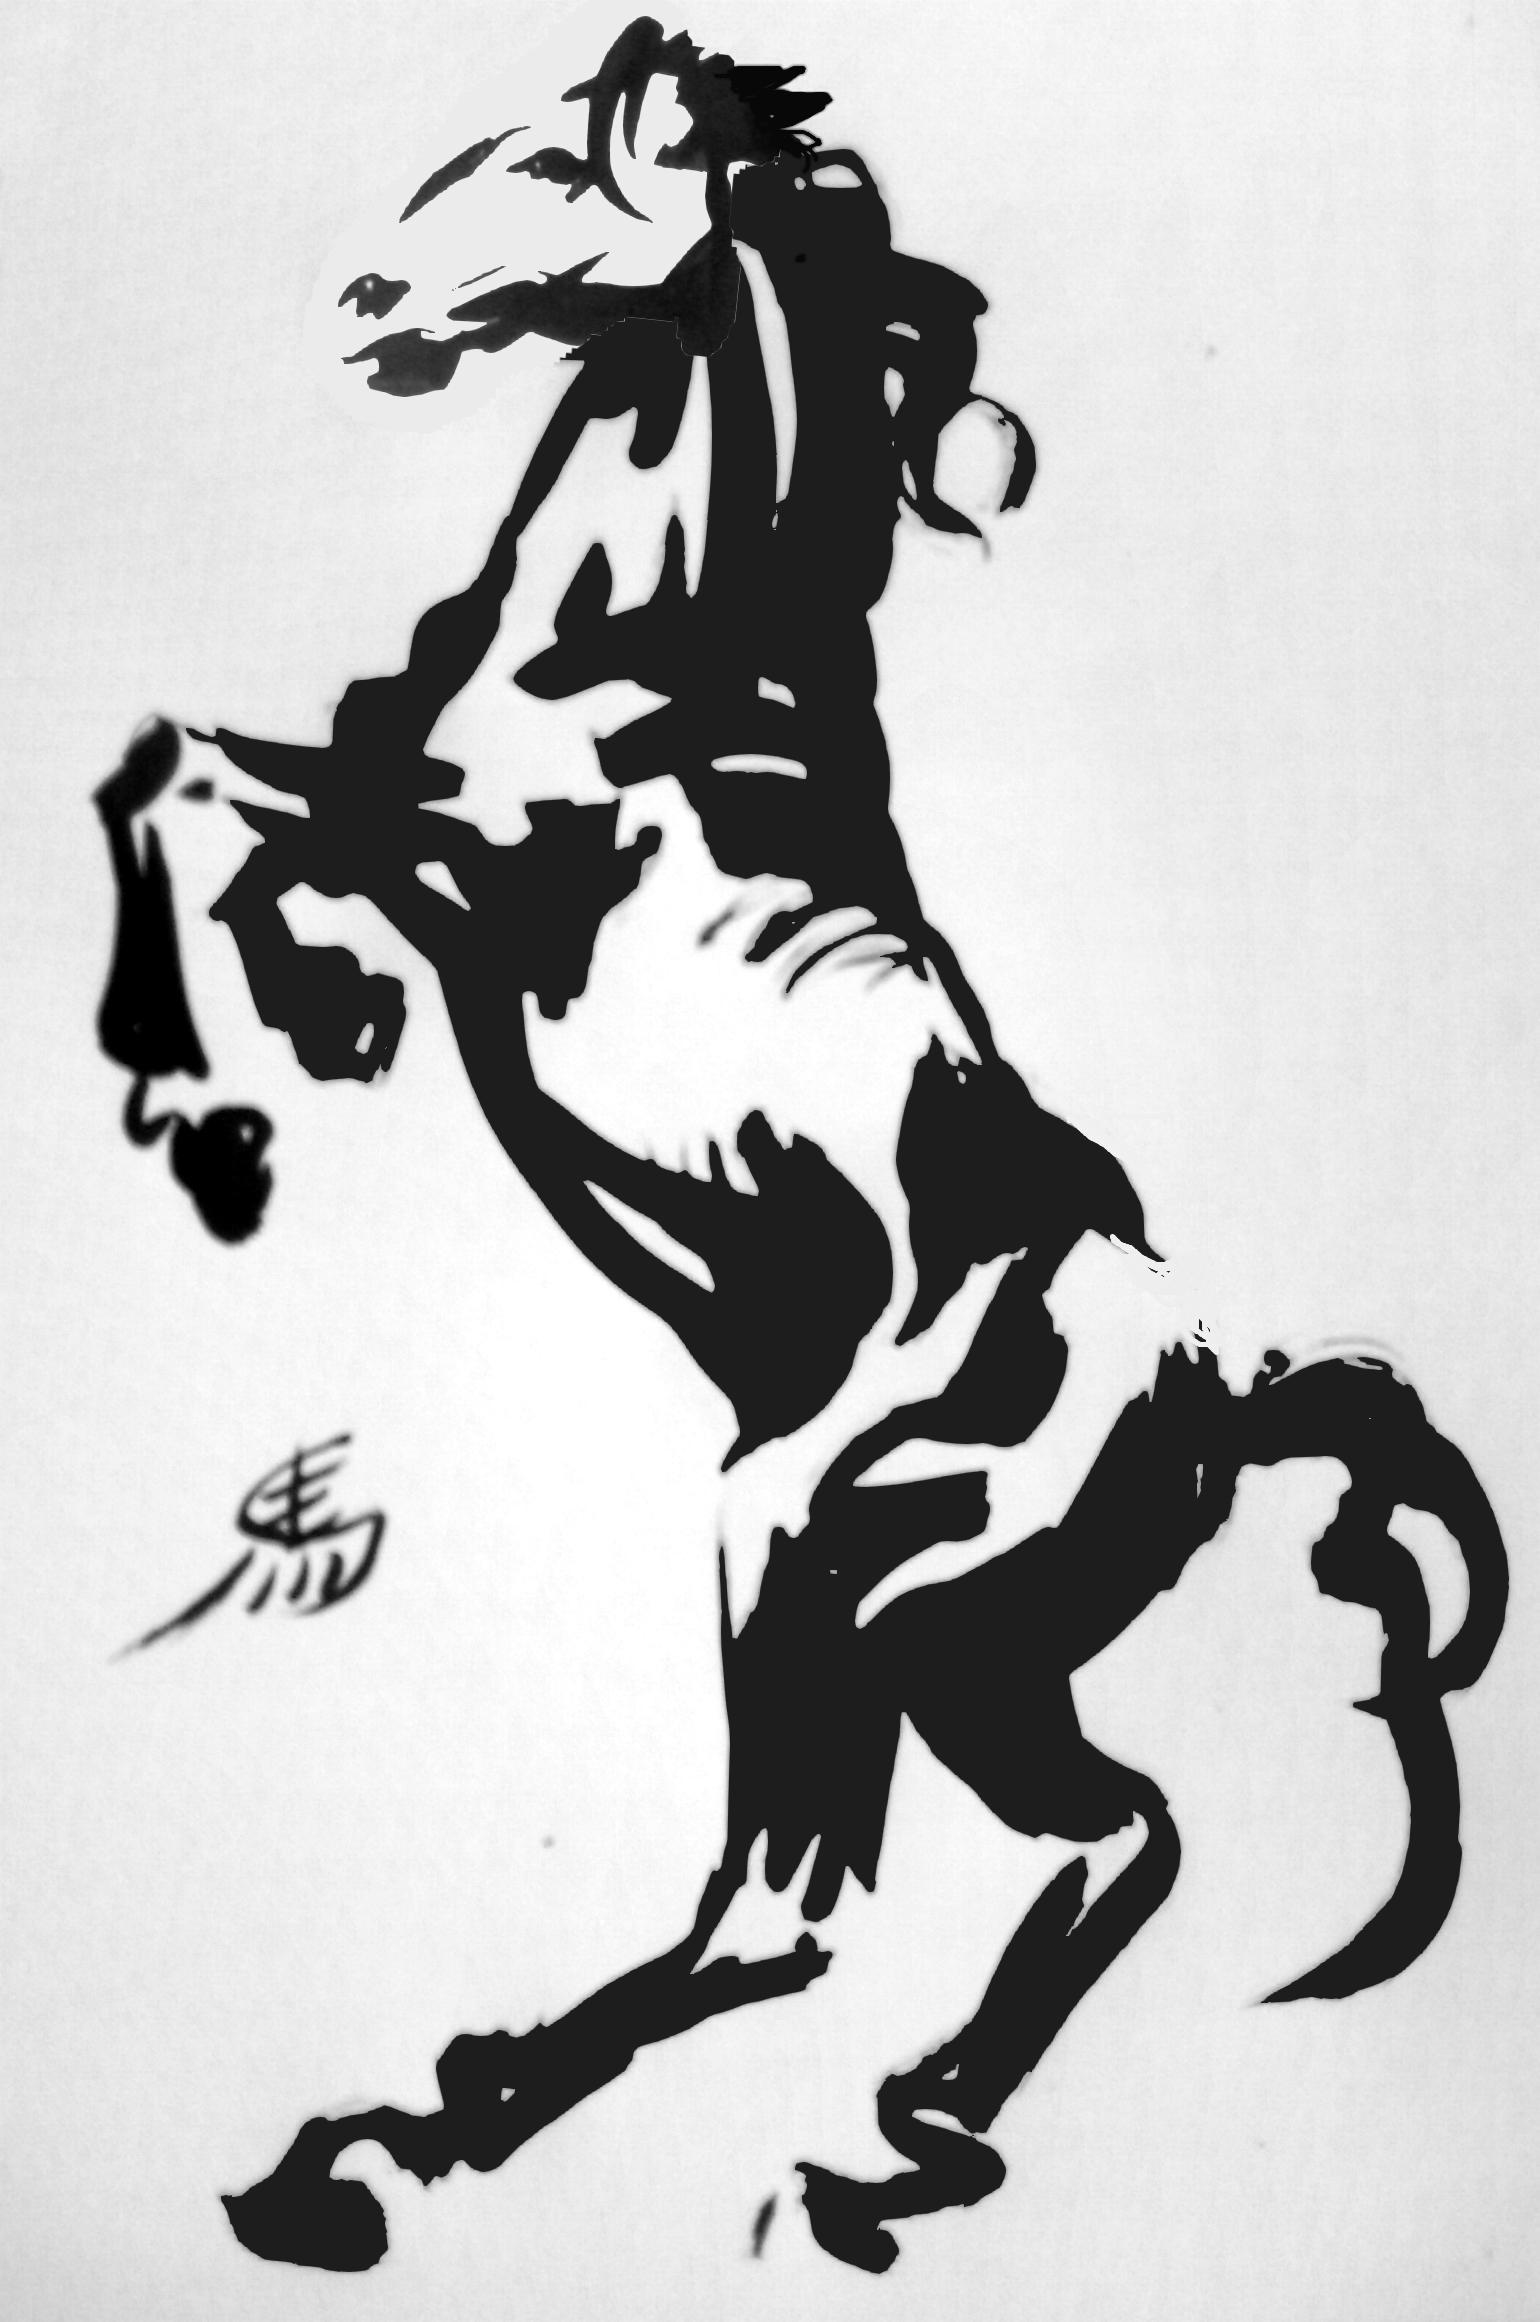 C novel dessins chevaux - Des dessin de cheval ...